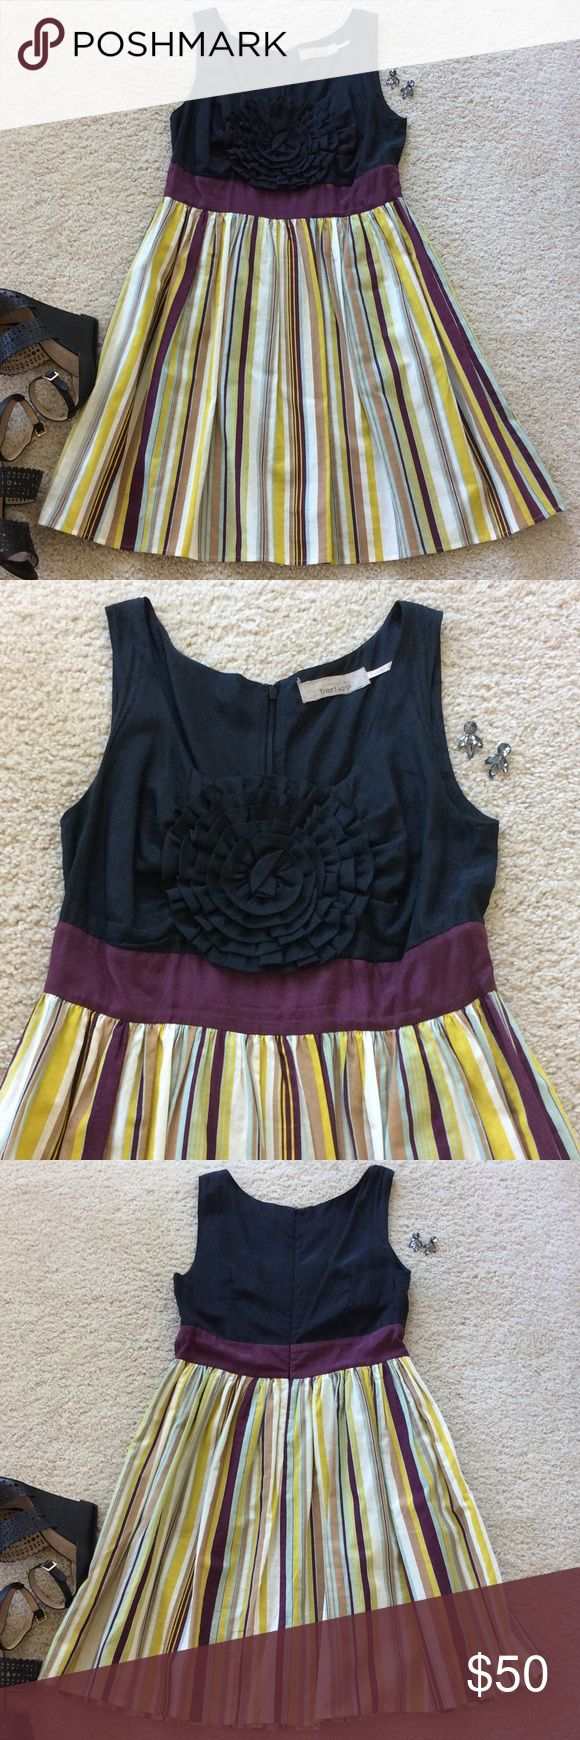 """{Anthropologie} Bold Boutonnière dress {Anthropologie} Bold Boutonnière dress by Burlapp. An oversized silk cotton carnation fastened atop a menswear skirt of striped oxford cloth. Hidden side pockets. Back zip. Lined. Laying flat approx 35"""" long, approx 16"""" pit to pit. 55 silk 45 cotton. Size M. Excellent condition. #358 Anthropologie Dresses"""